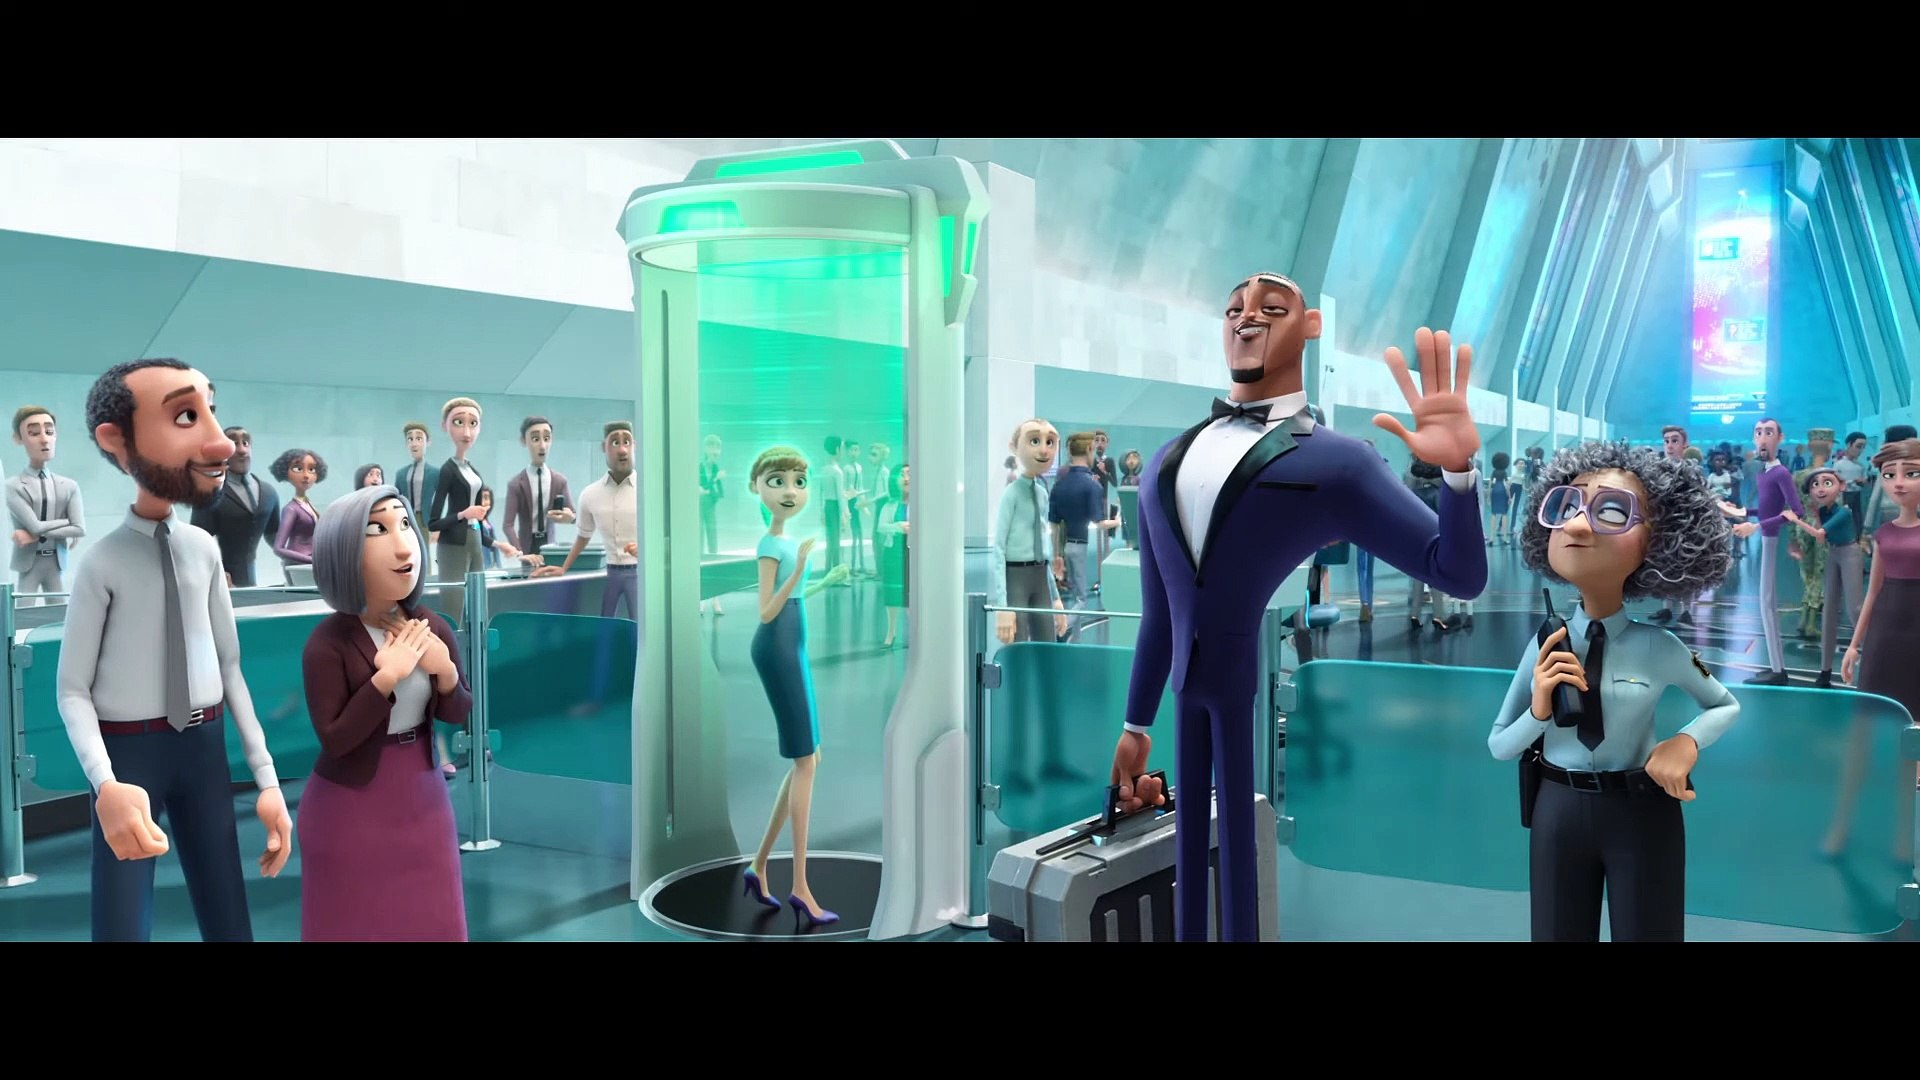 Spies In Disguise Movie 2019 Video Dailymotion